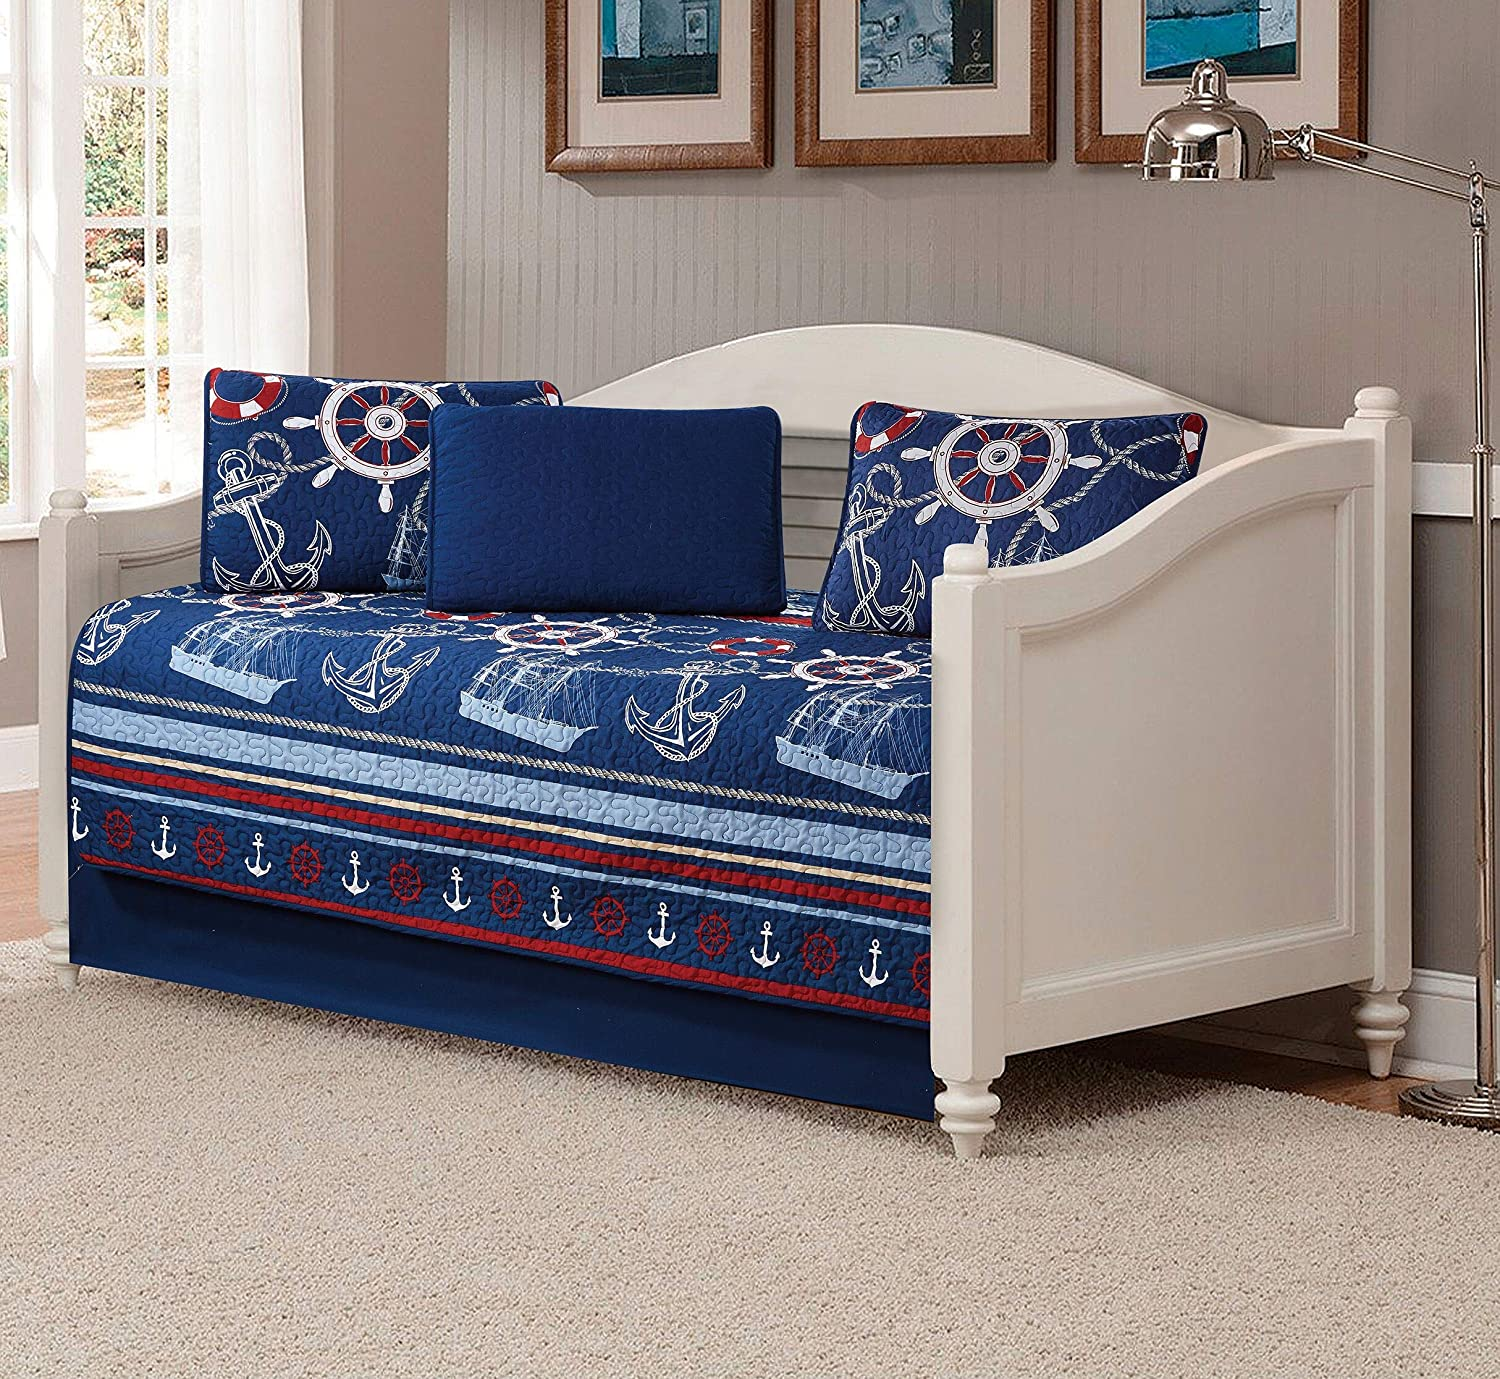 Better Home Style Light & Dark Blue White Red Striped Nautical Ships Helms Anchors Sailor Printed Design 5 Piece Daybed Coverlet Bedspread Quilt Bed Cover Set (10586)